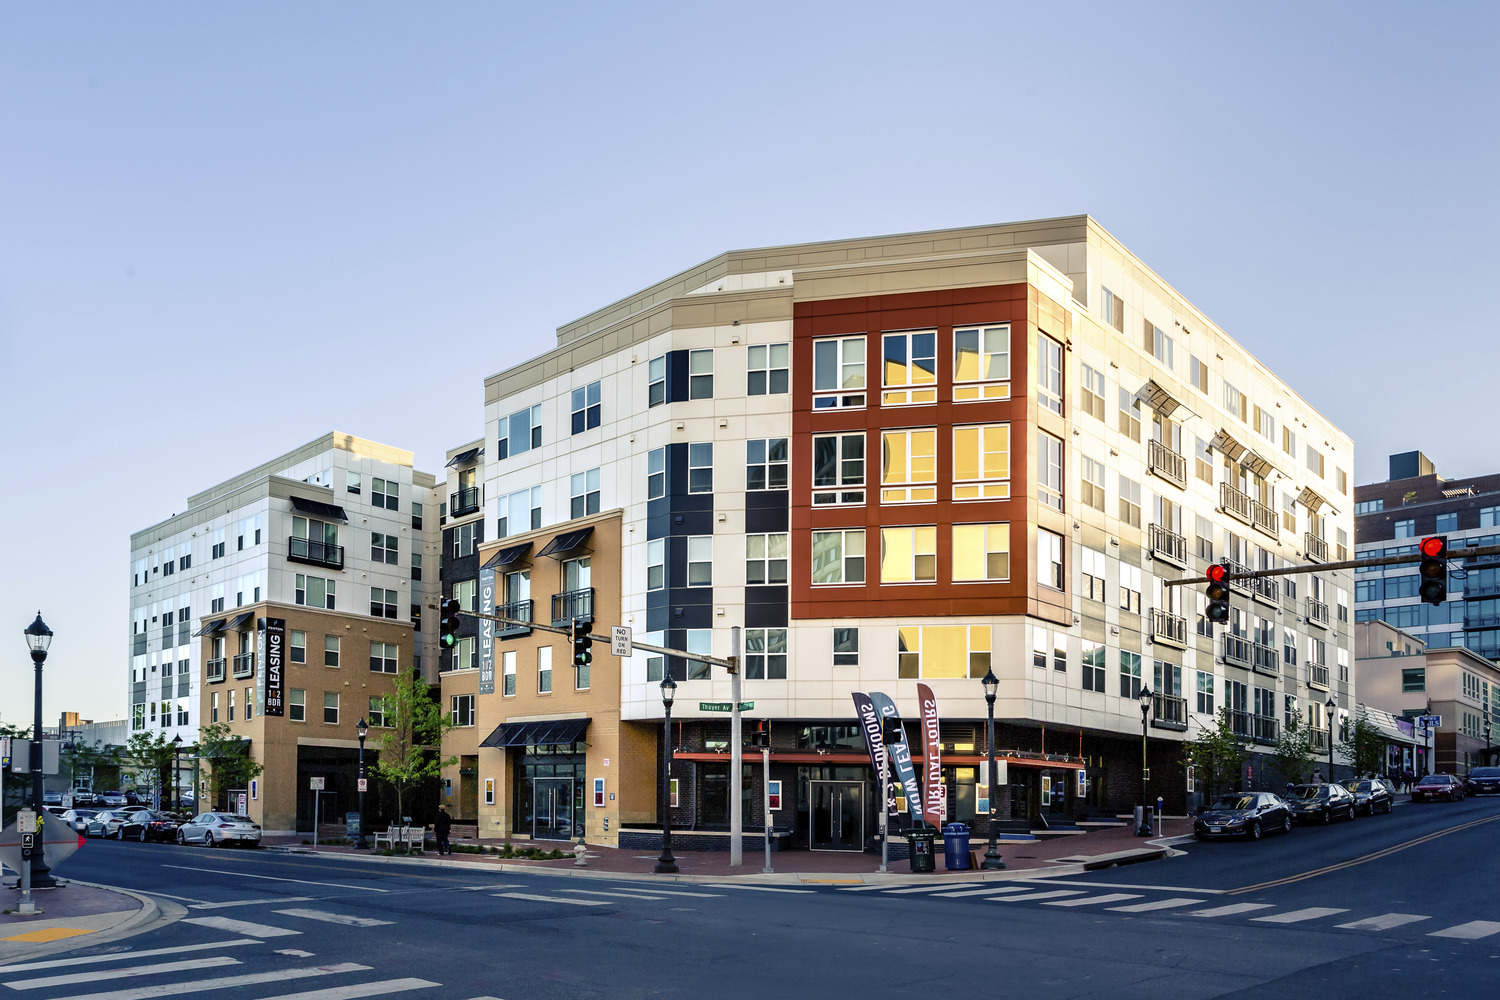 CBG builds Fenton Silver Spring, a LEED® Gold 124-Unit Affordable Community with Amenities and Retail in Silver Spring, MD